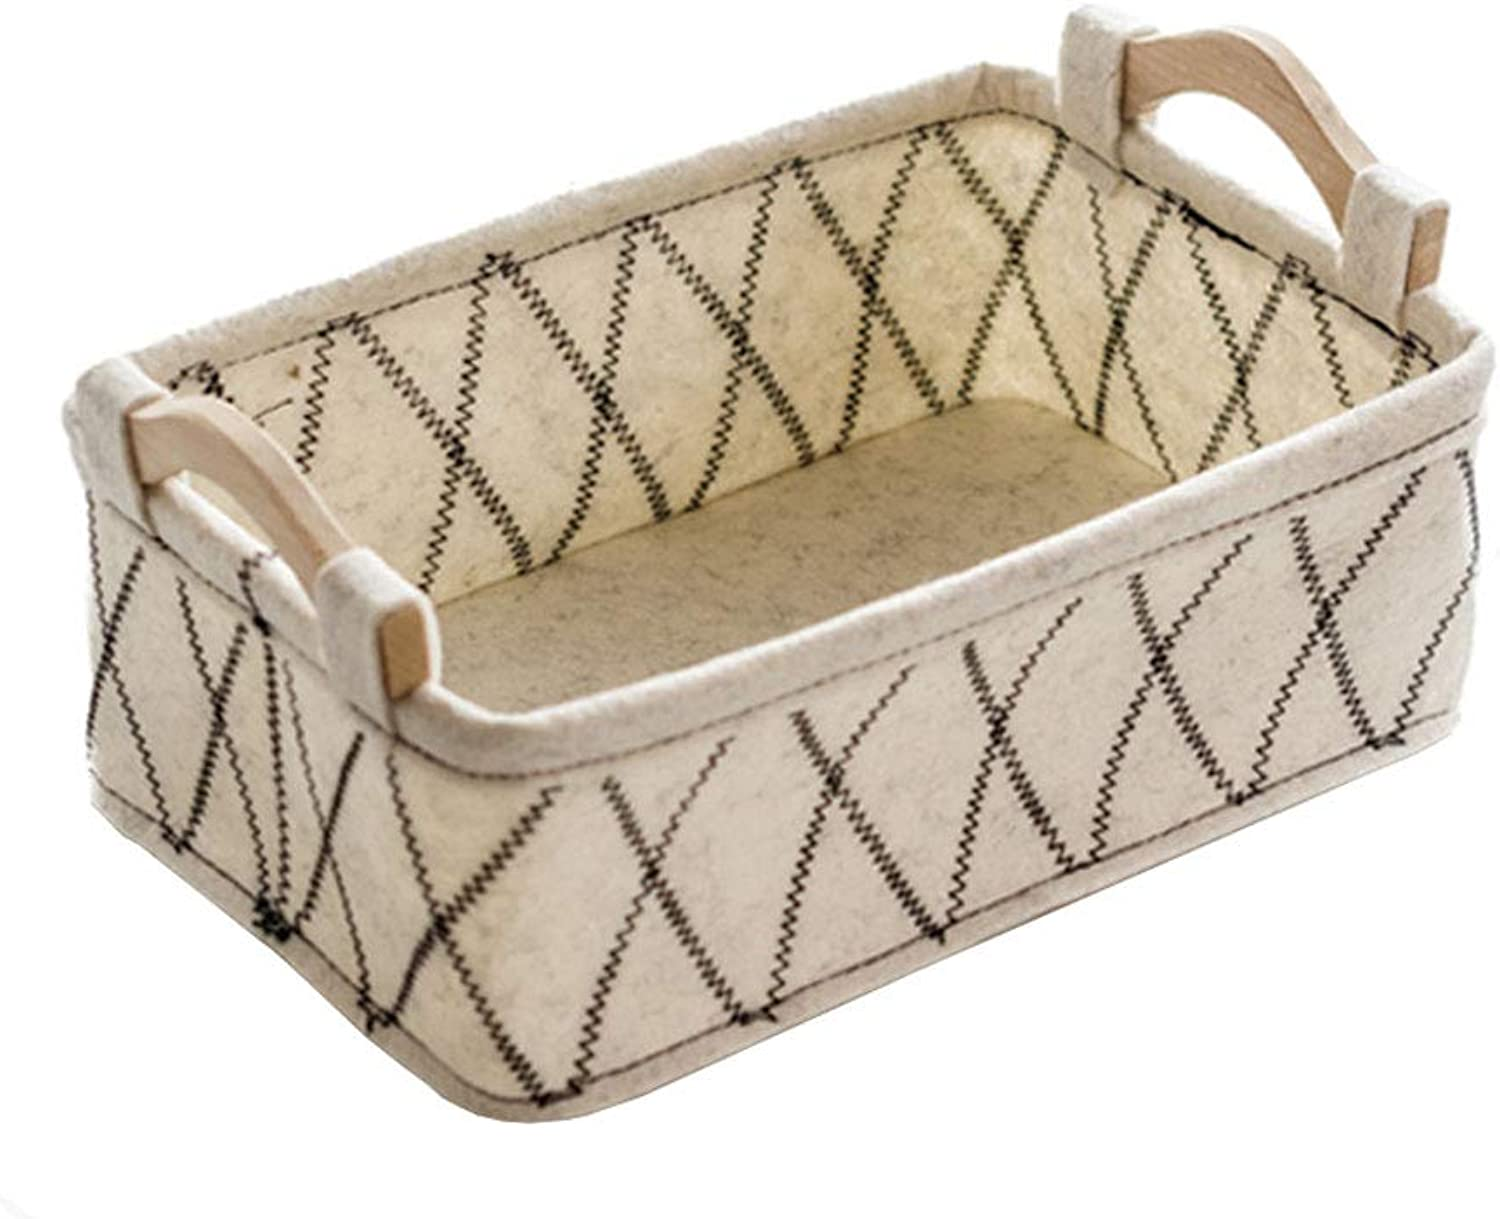 Storage Basket with Handle Sundries Finishing Organize Box for Home Office Bedroom and Gift (Size   29  19  13.5cm)